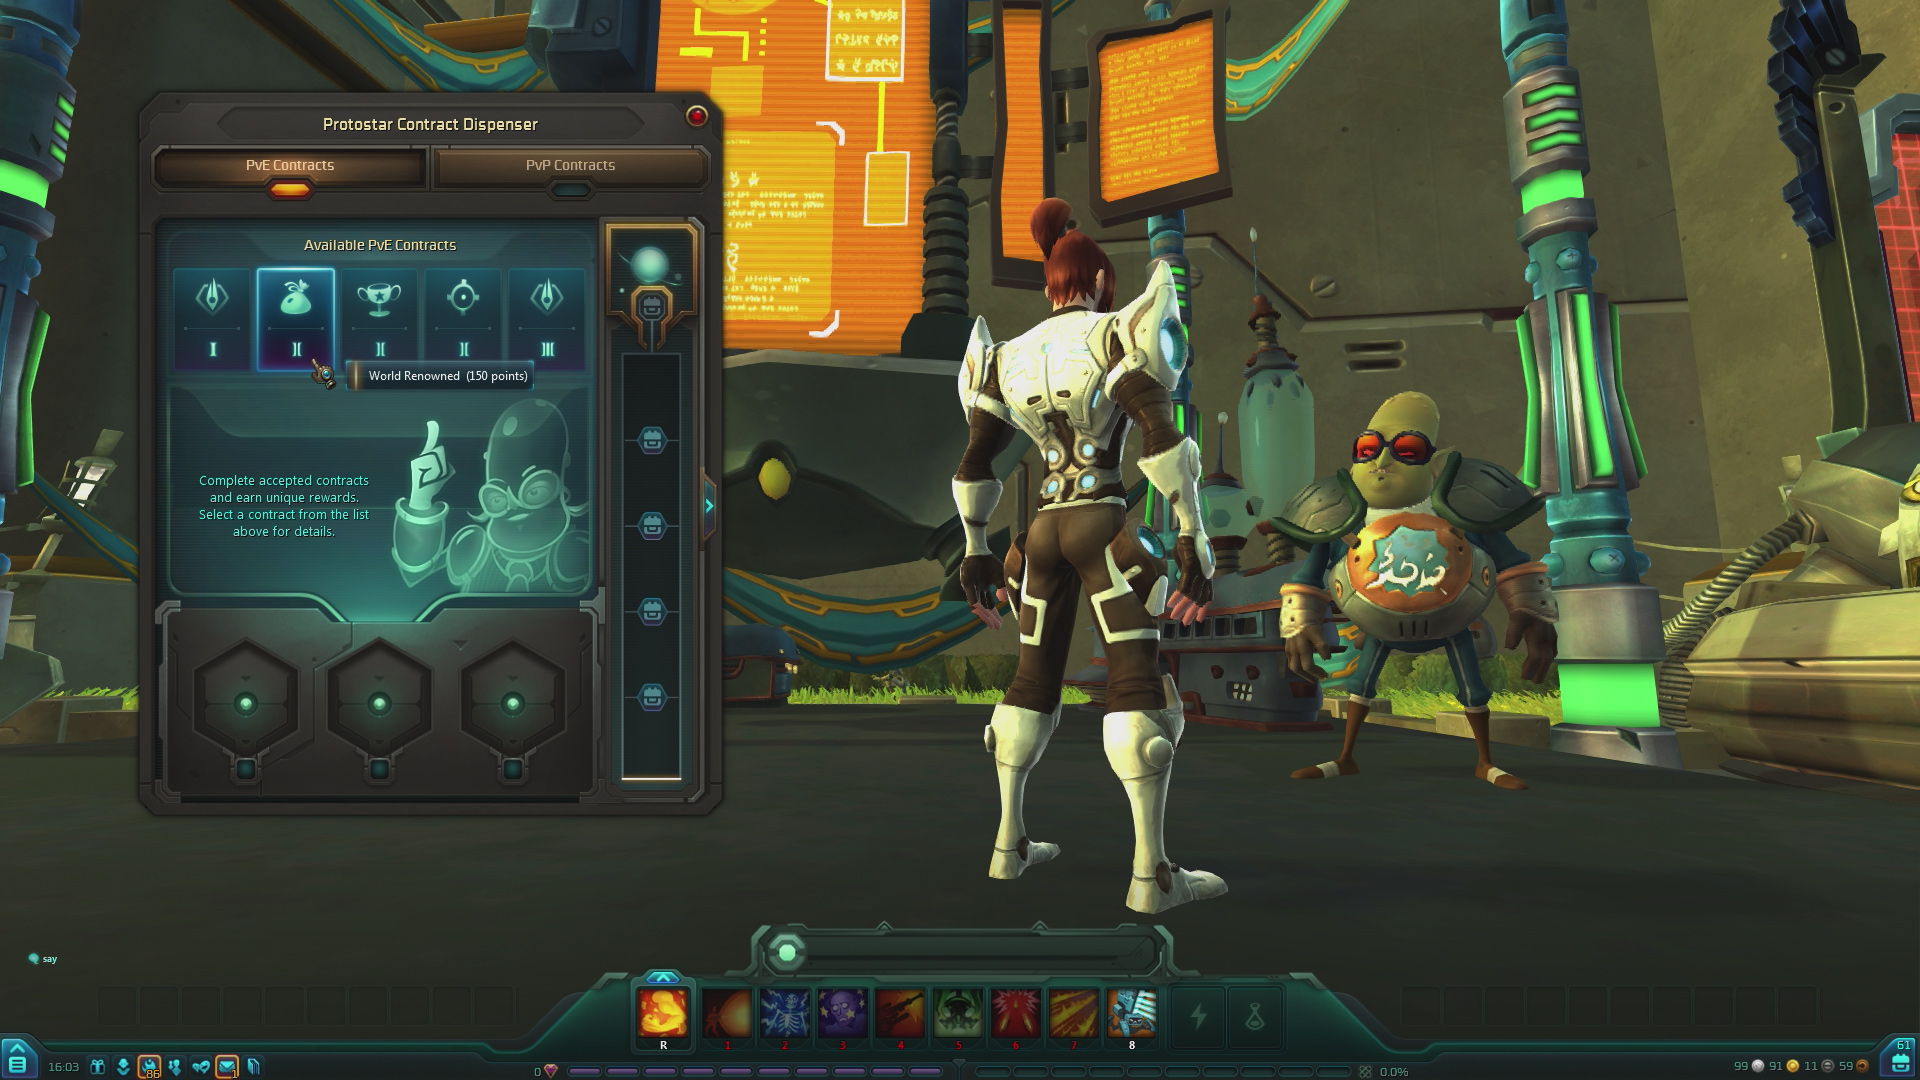 New Contracts Feature In Wildstar Promises To Make The